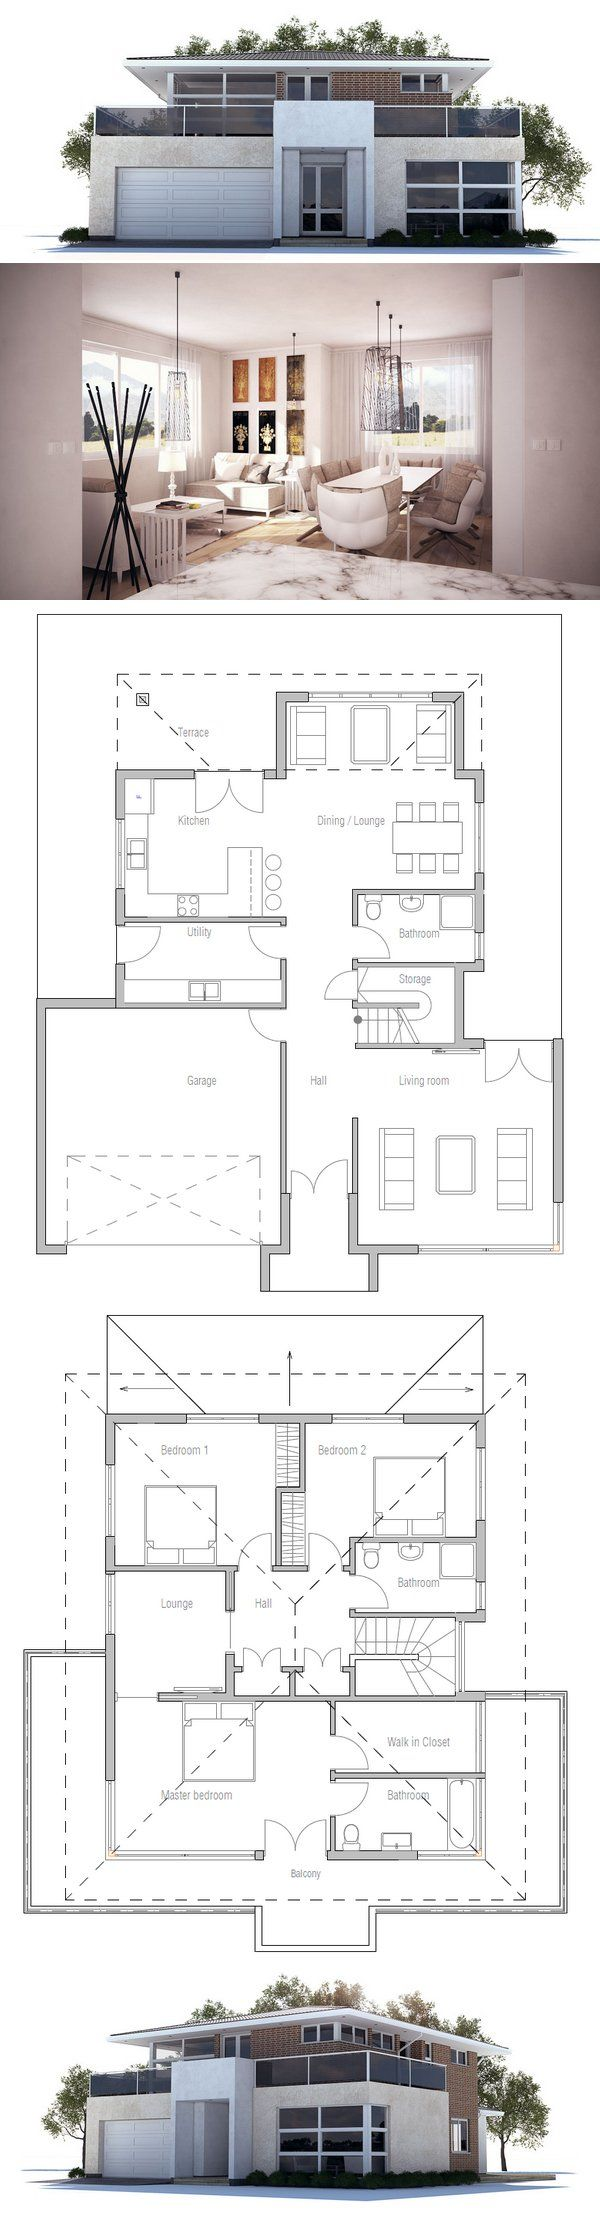 Modern House Plans best 25+ small modern houses ideas on pinterest | small modern